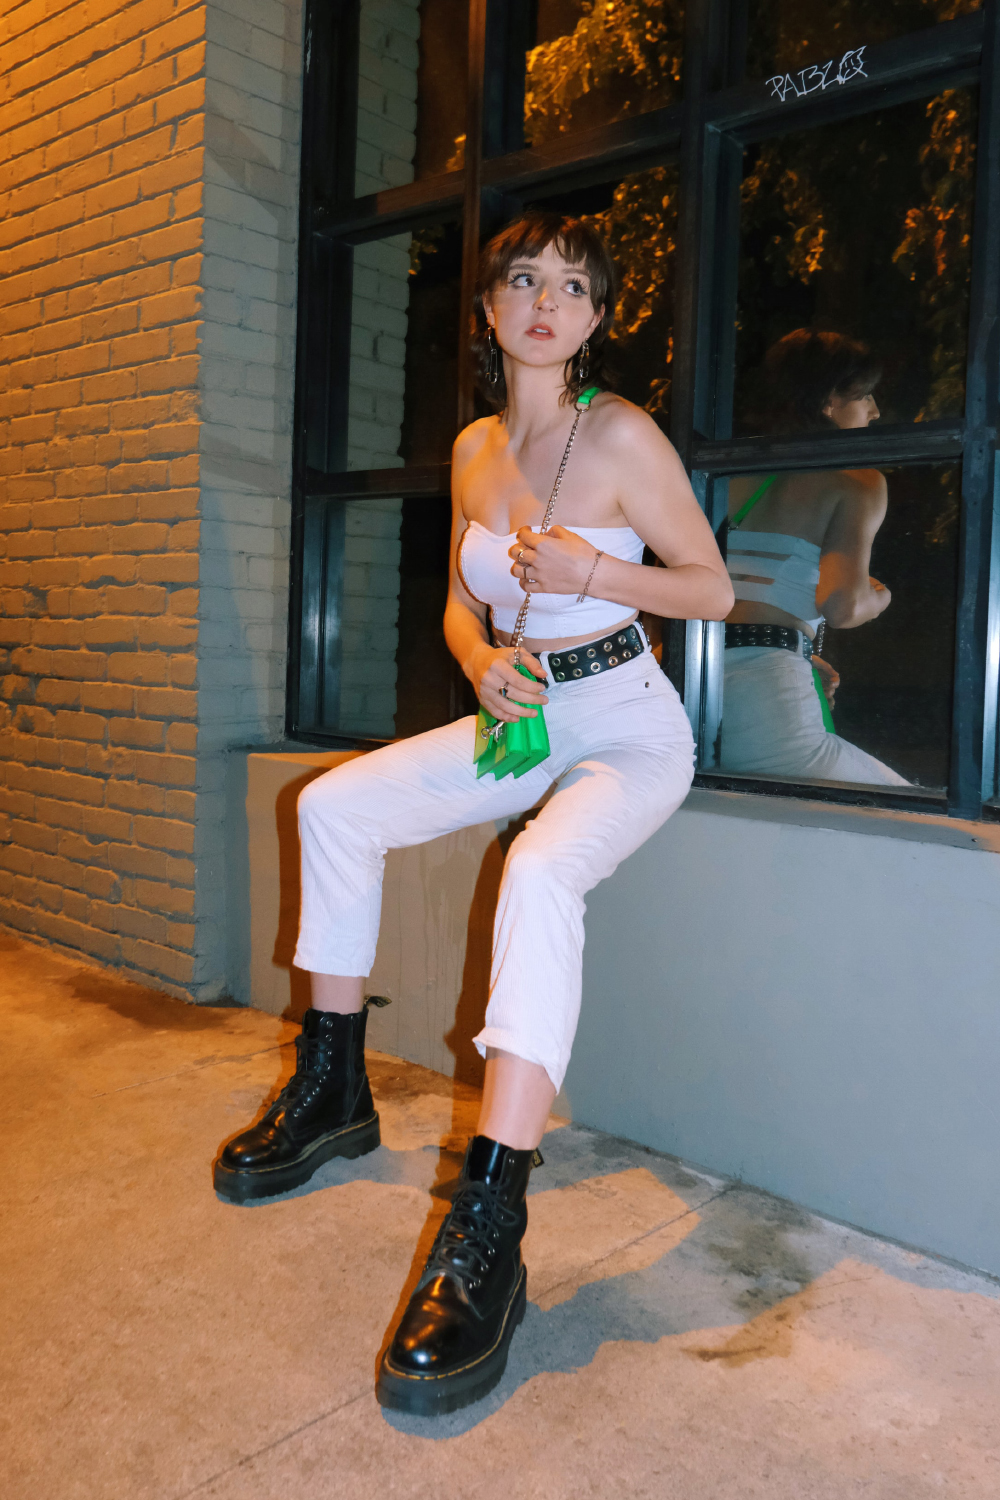 woman in party makeup posing close to the window on the street at night